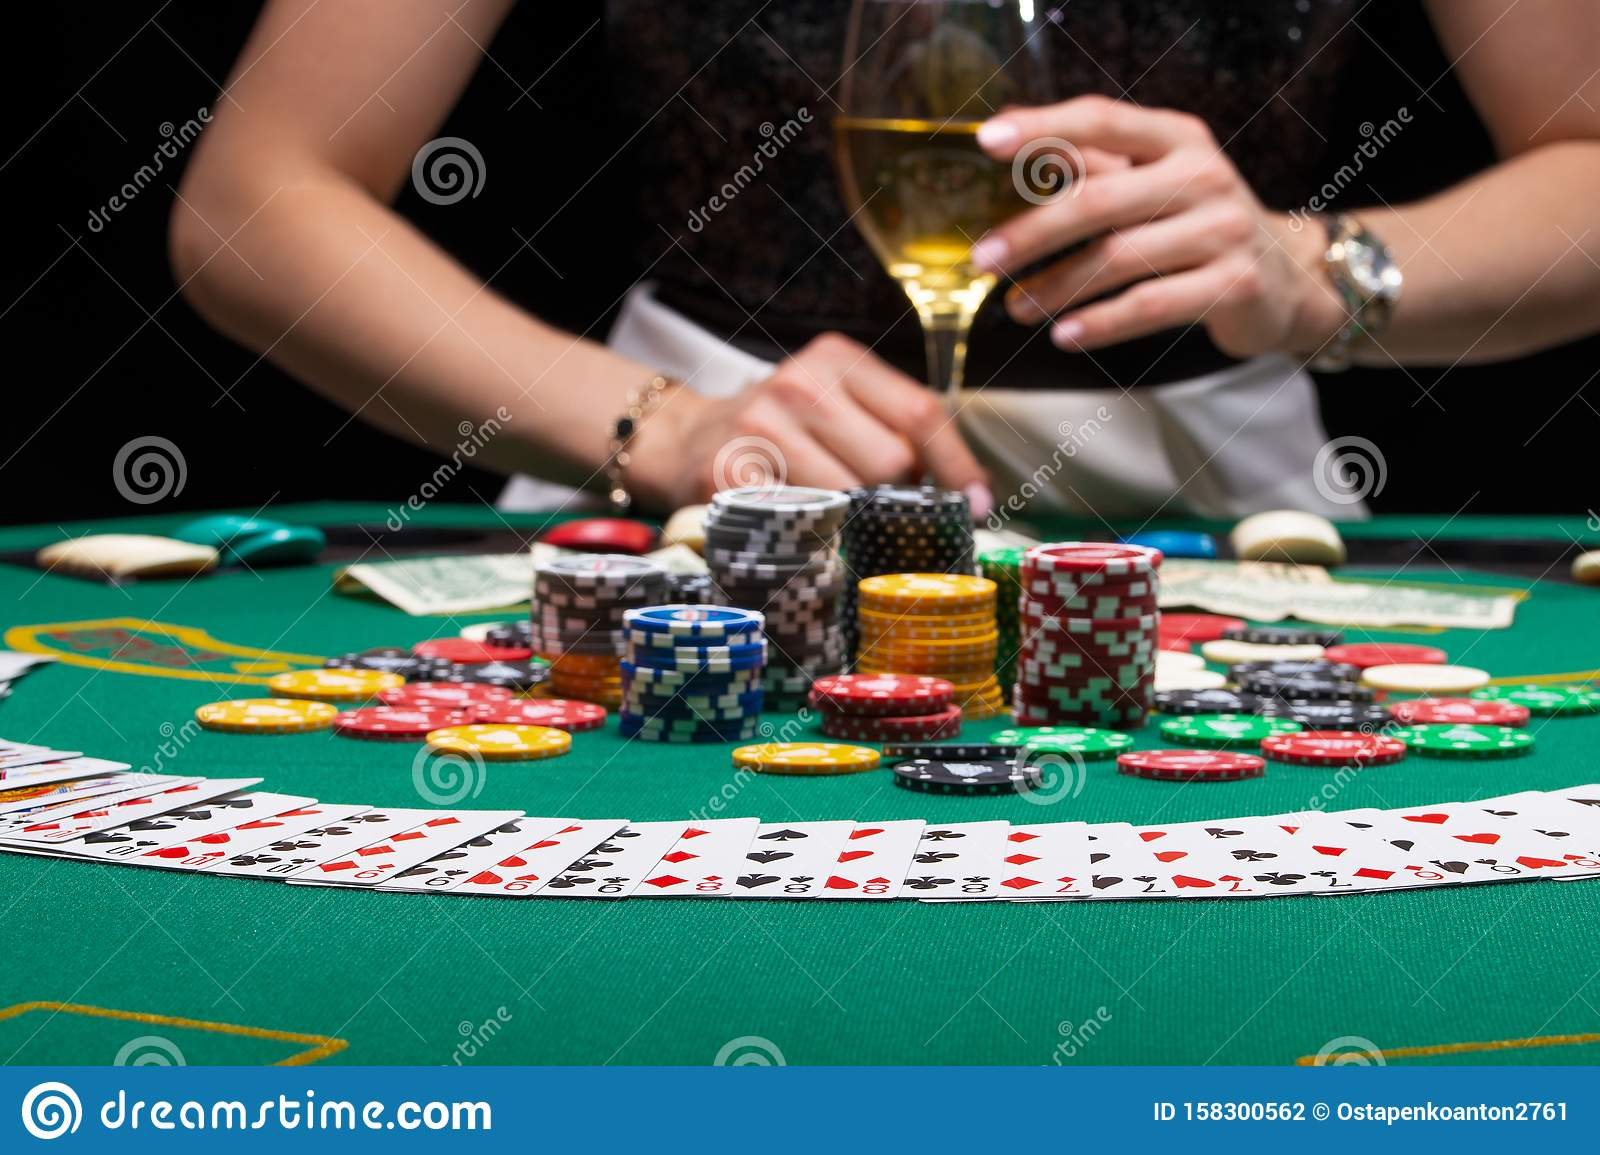 Background Of A Gaming Casino, Poker Table, Cards, Chips ...